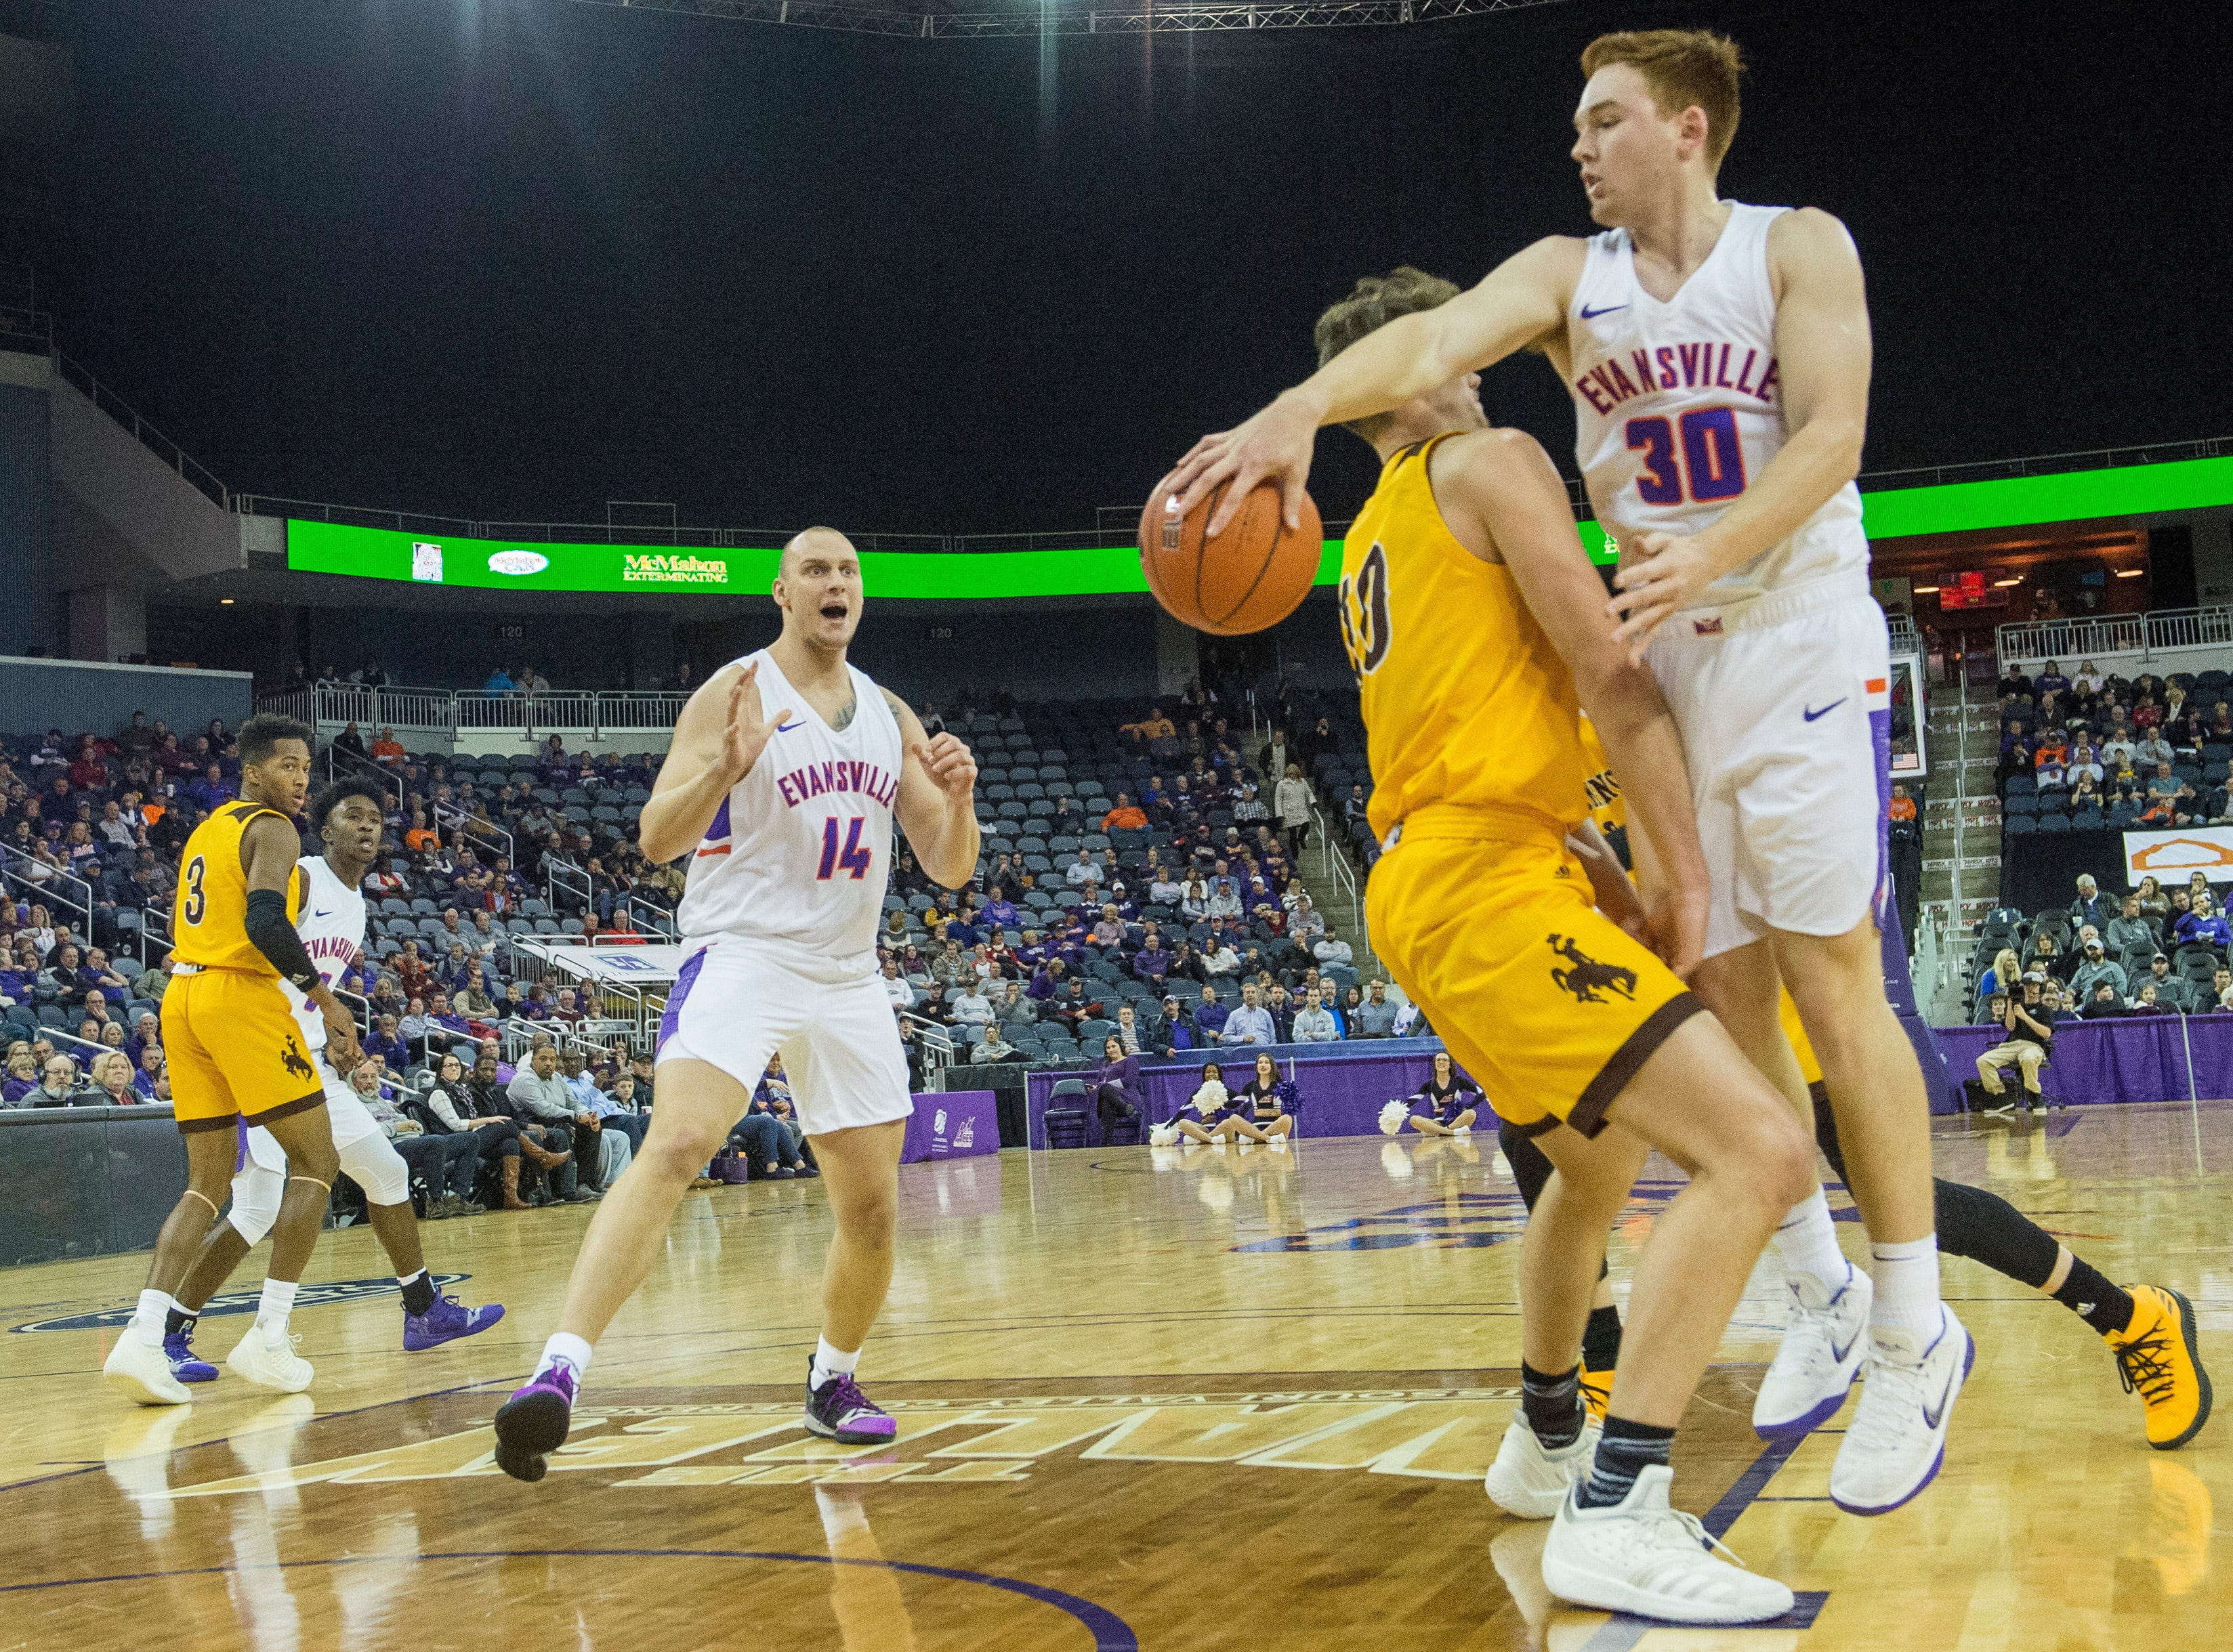 UE's Noah Frederking (30) passes the ball to UE's Dainius Charkevicius (14) during the UE vs Wyoming game at the Ford Center Wednesday, Nov. 28, 2018. UE won 86-76.